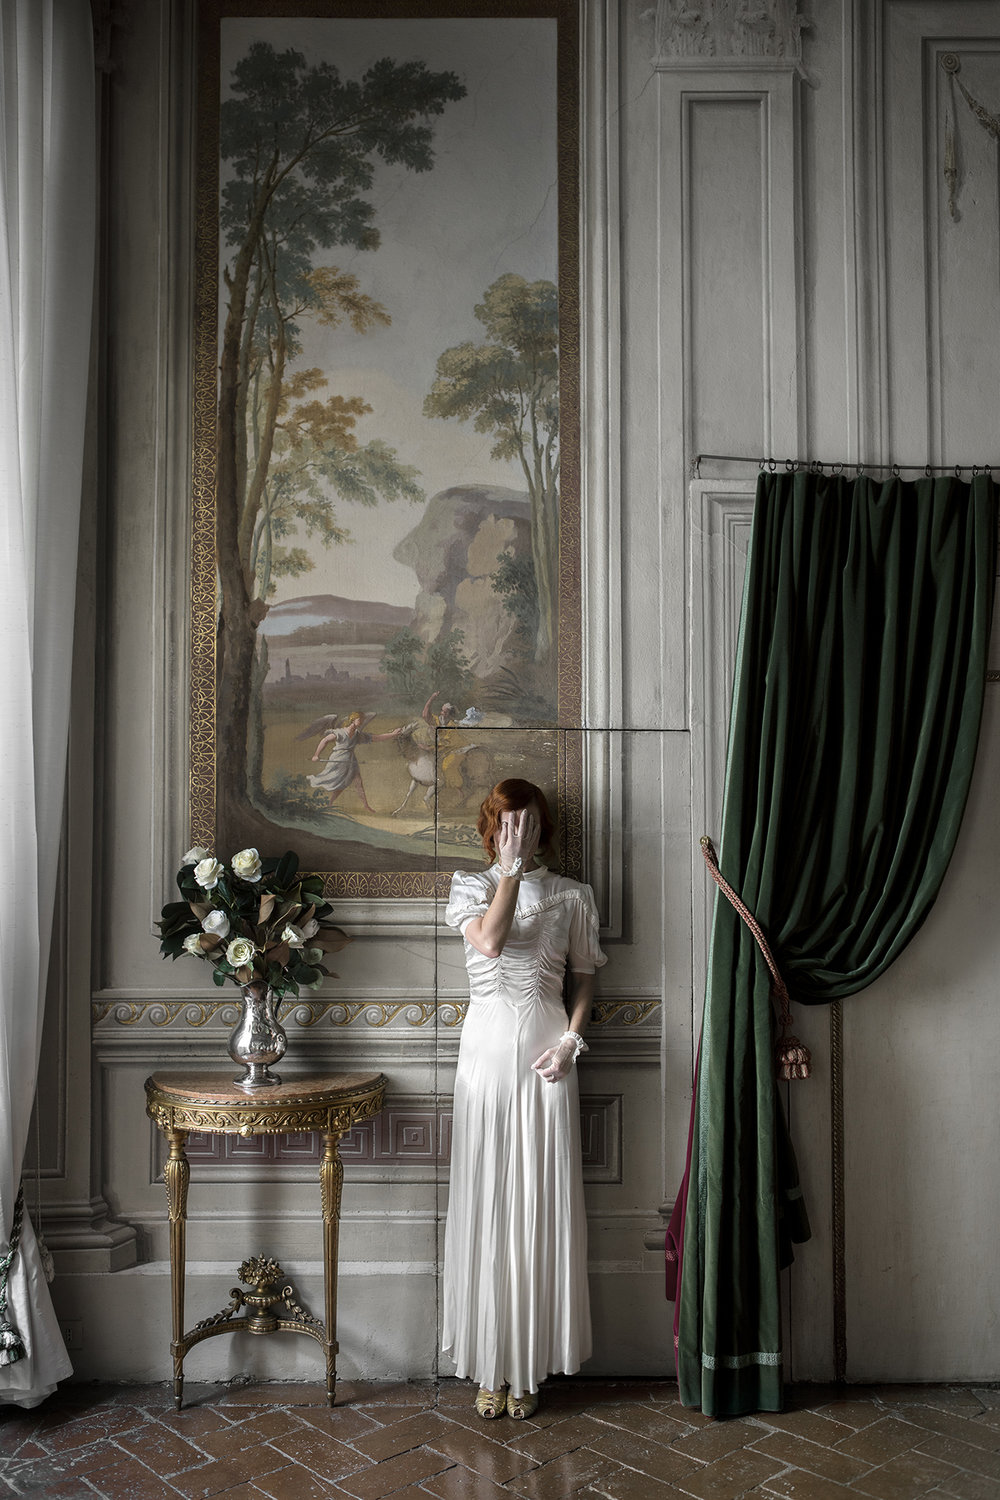 Intermission © Anja Niemi _ The Little Black Gallery.jpg